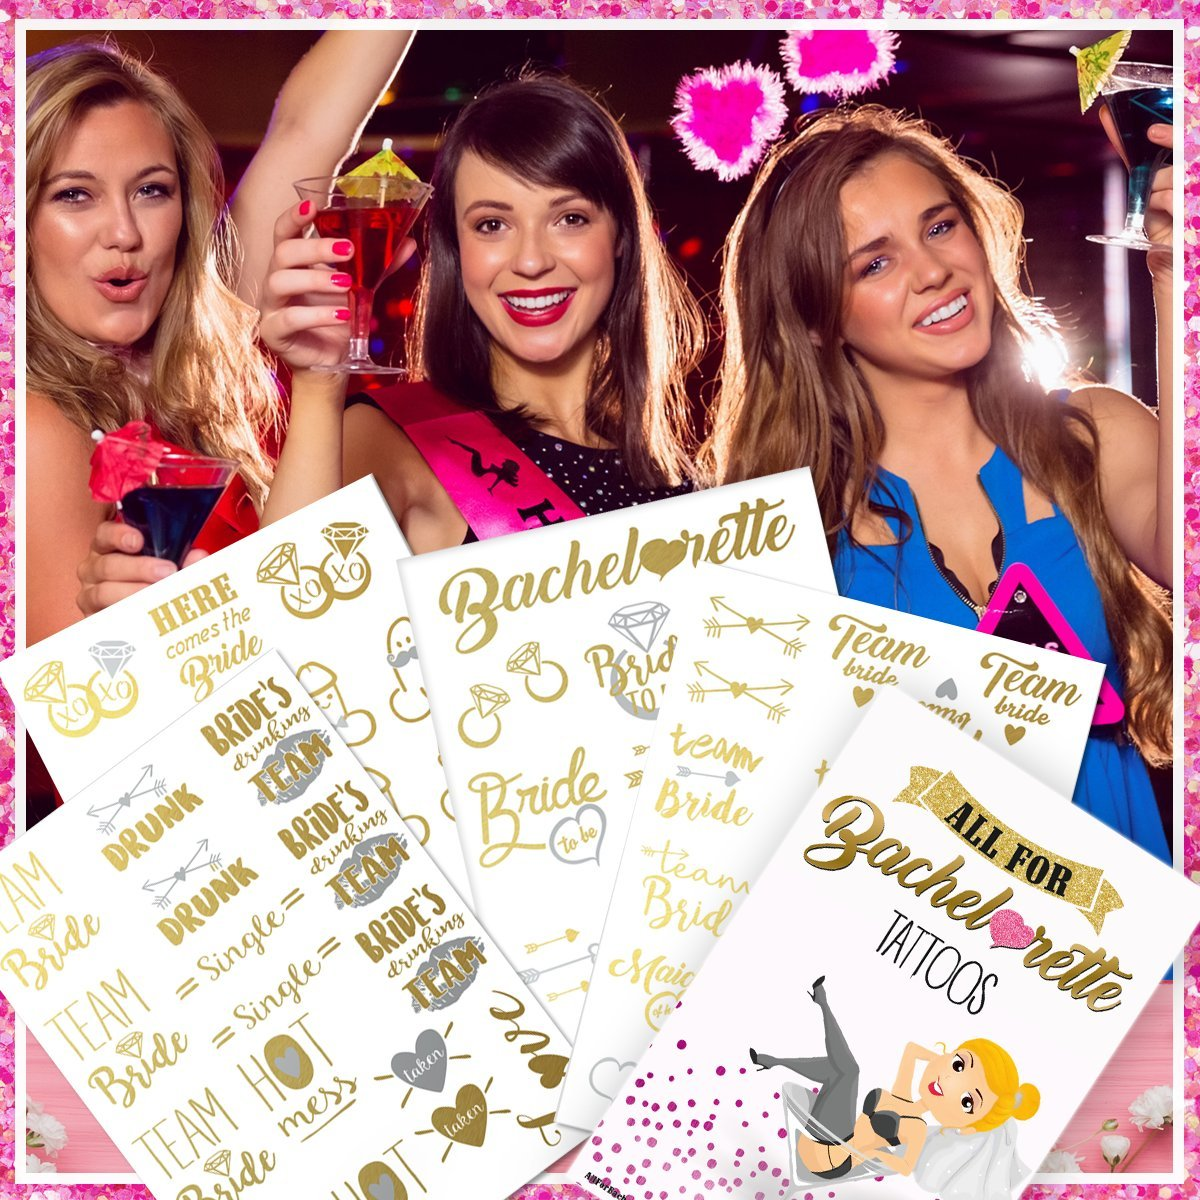 Bachelorette Party Tattoos - Gold & Silver Metallic Flash Temporary Tattoos, Mixed Set of 66 Bachelorette/Hen Party Favors by AllForBachelorette (Image #2)